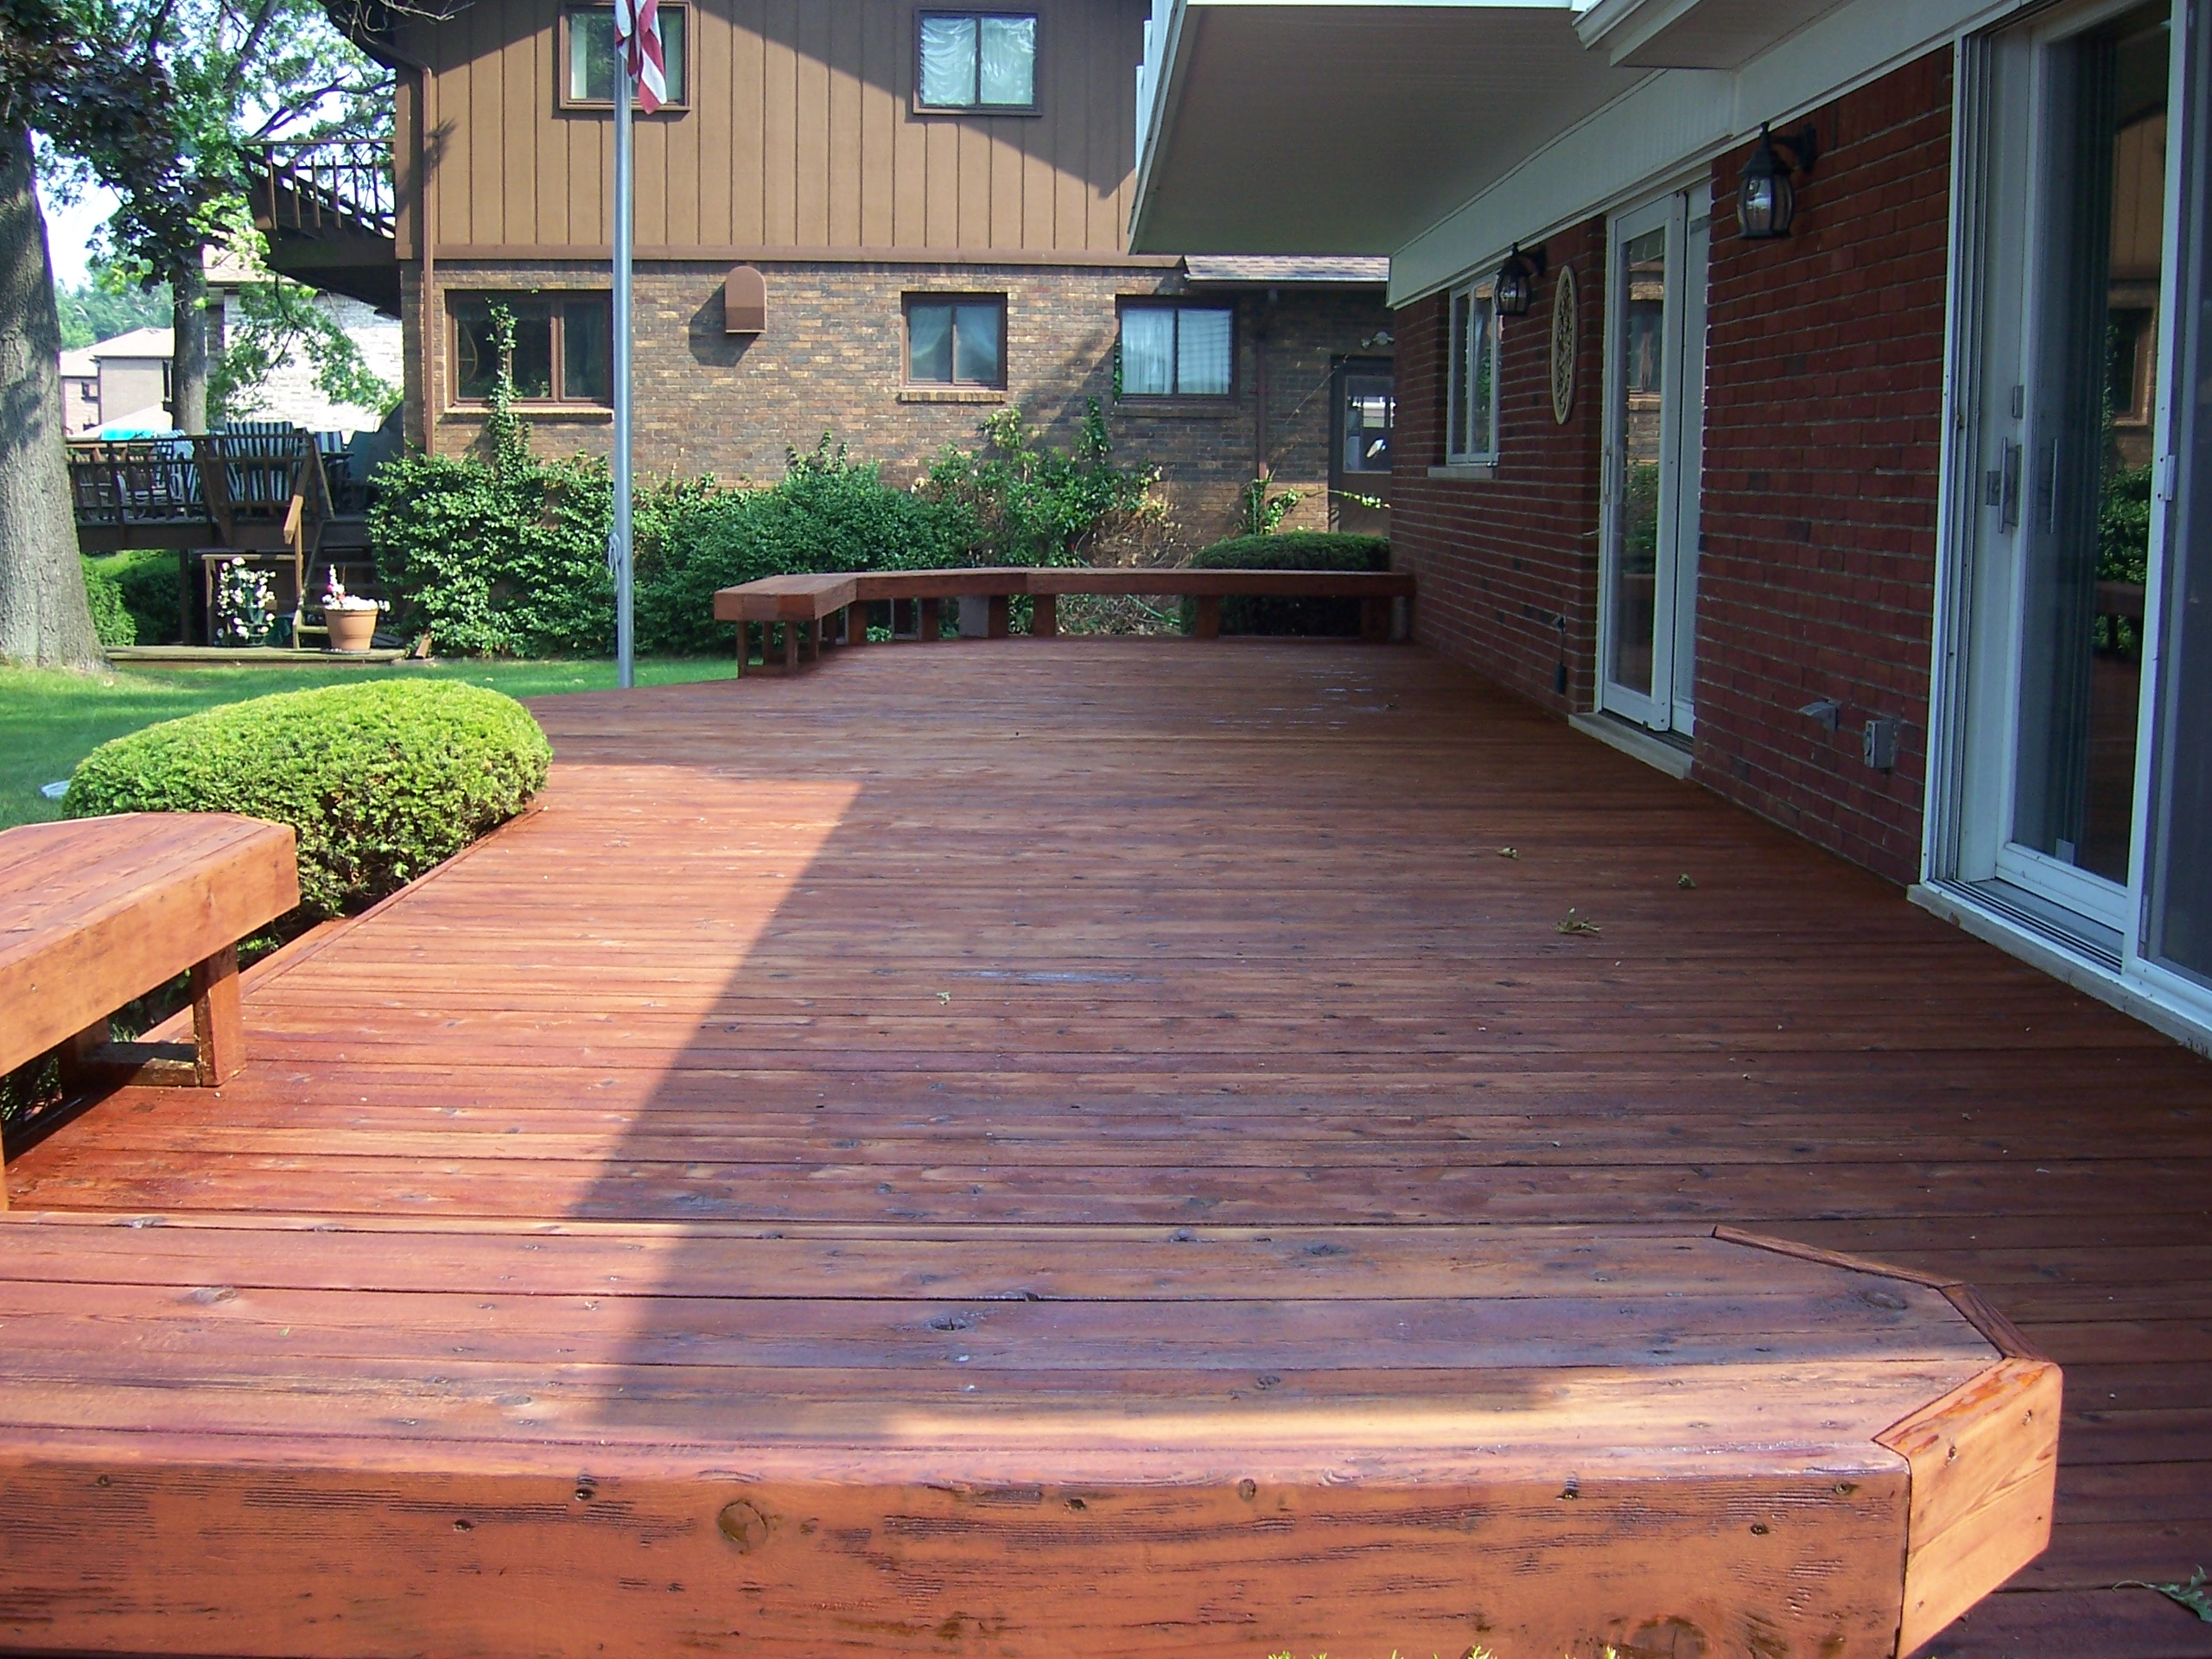 Best Stain Color For Cedar Deck Cabot Exterior Visualizer Deck Main Color Cabot Need Help With